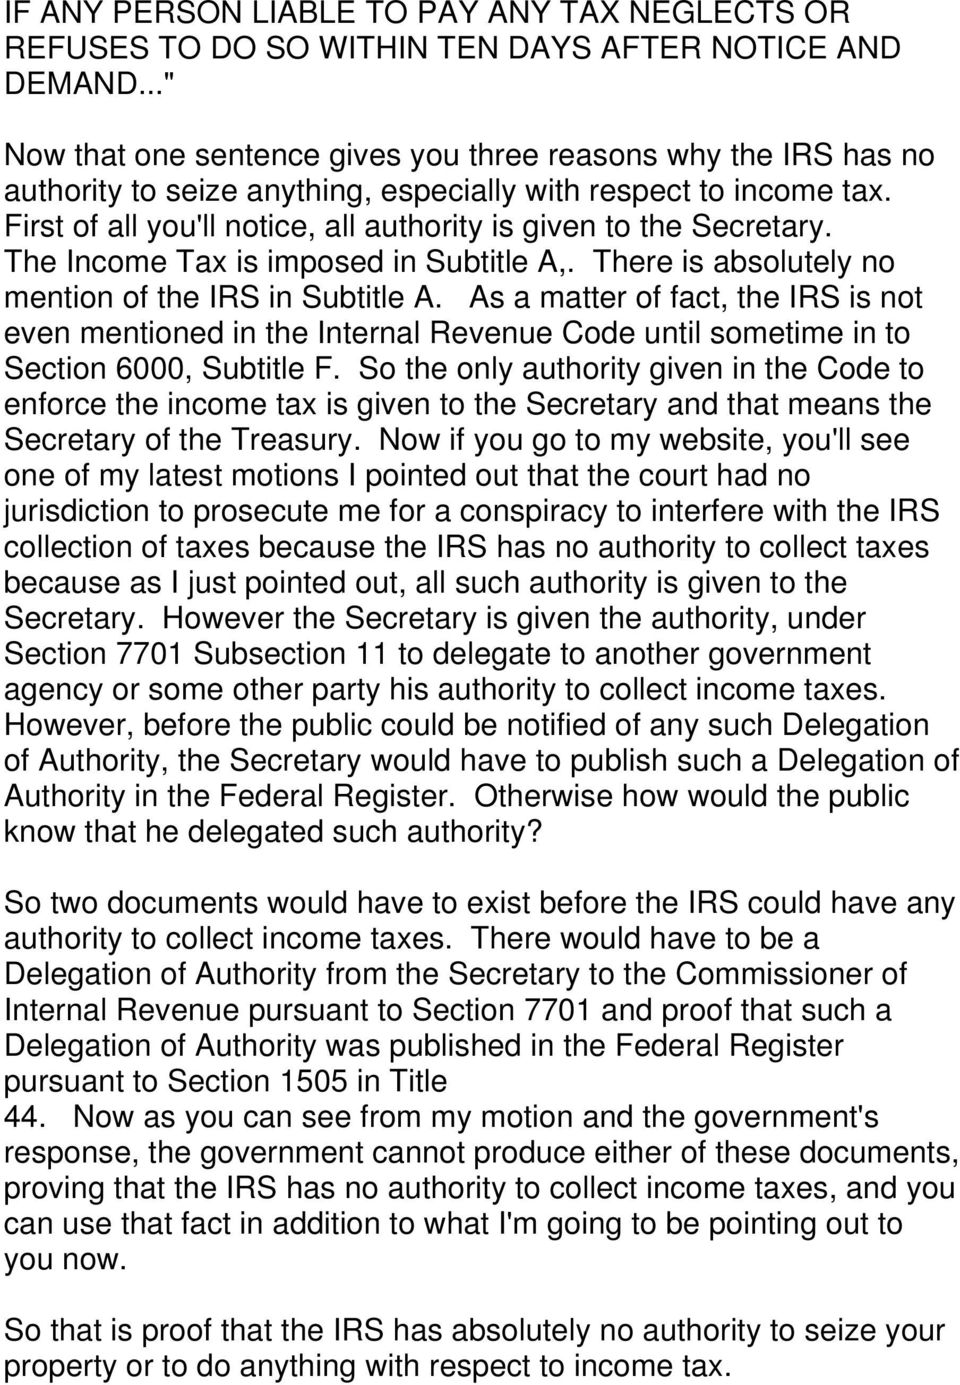 First of all you'll notice, all authority is given to the Secretary. The Income Tax is imposed in Subtitle A,. There is absolutely no mention of the IRS in Subtitle A.